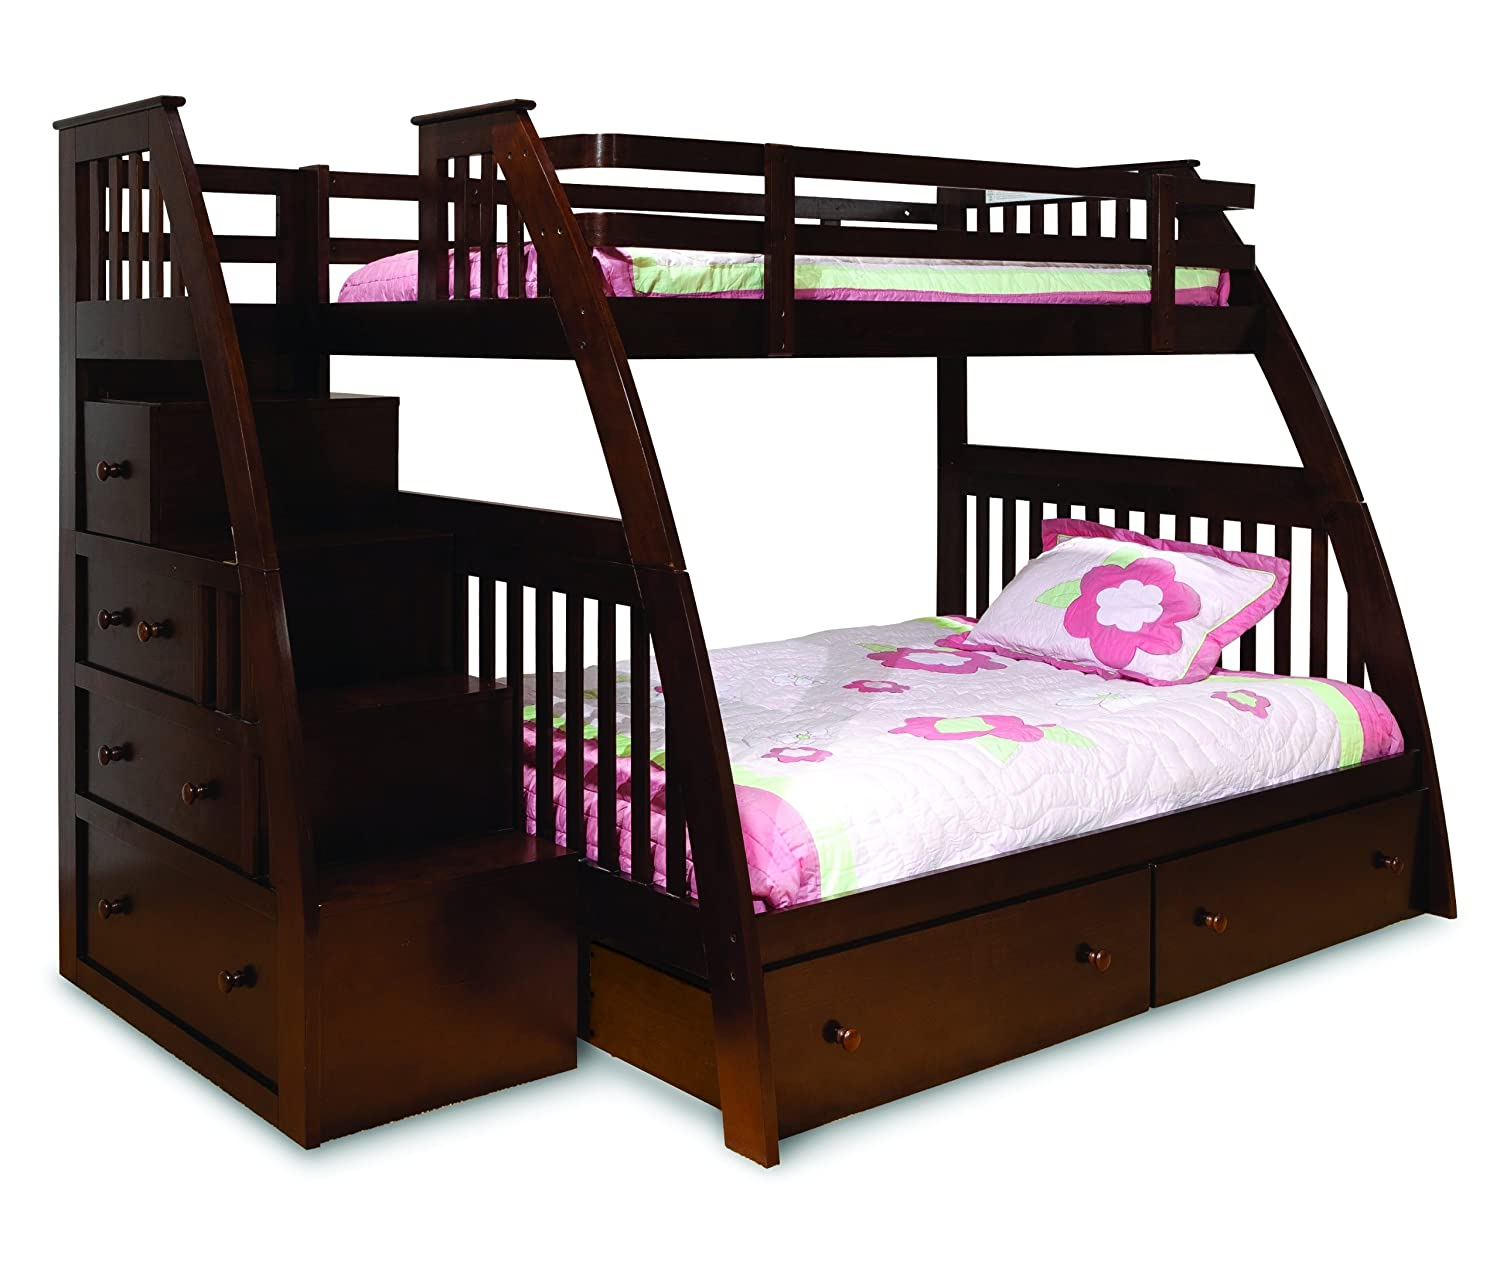 Bunk Beds With Drawers Fel7 Com